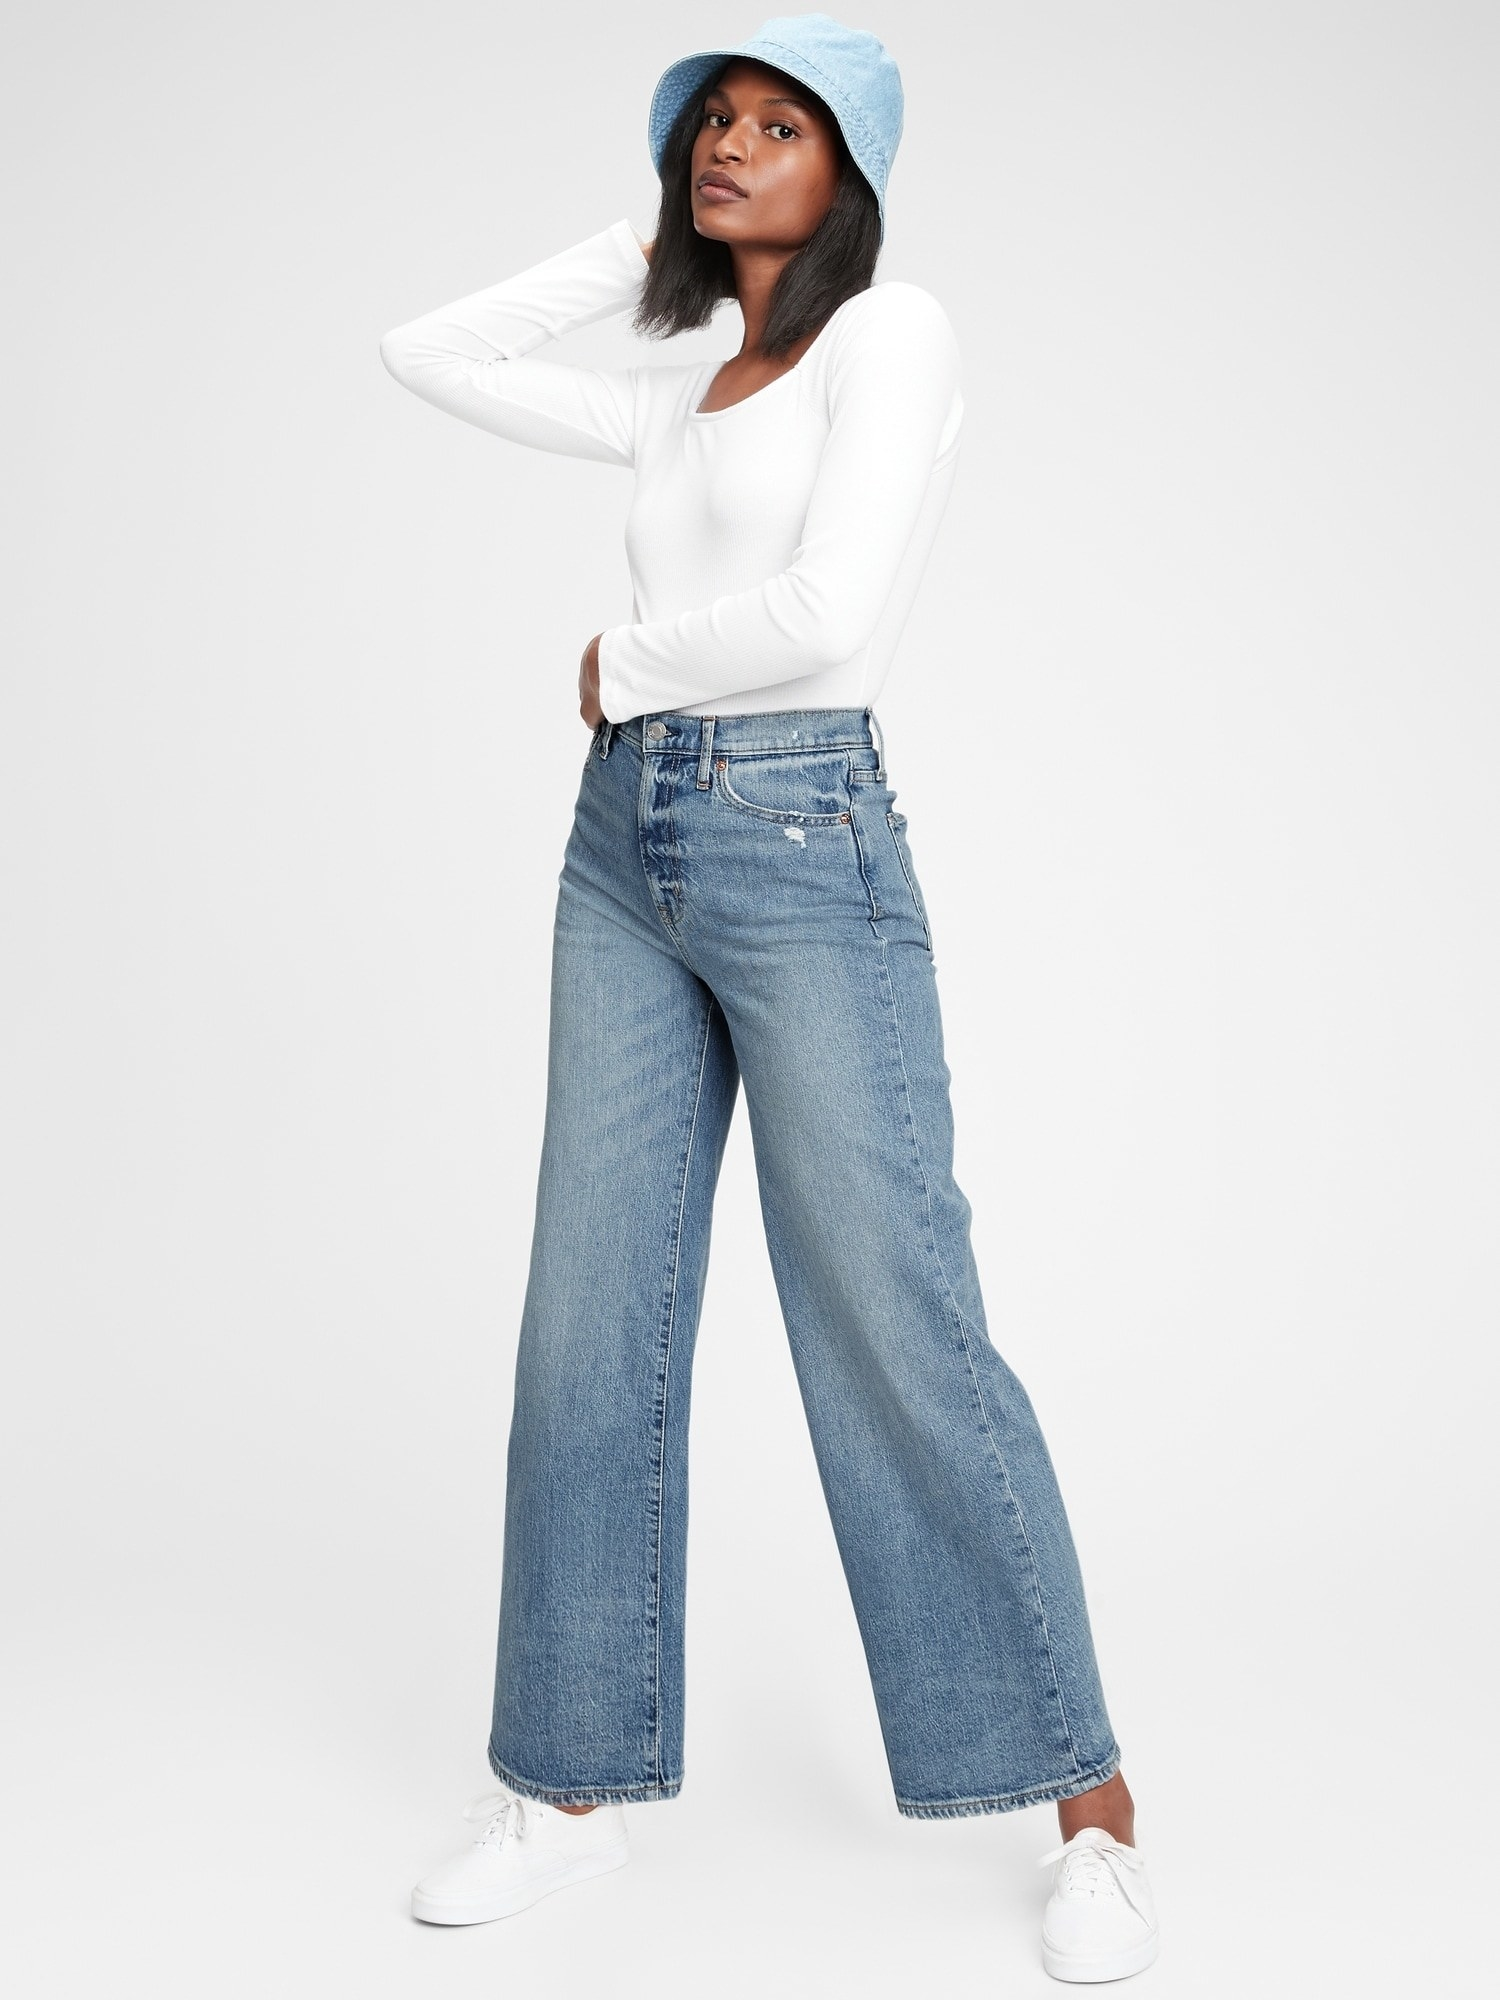 model wearing sky high wide-leg jeans in medium indigo wash with white long-sleeve t-shirt and white sneakers